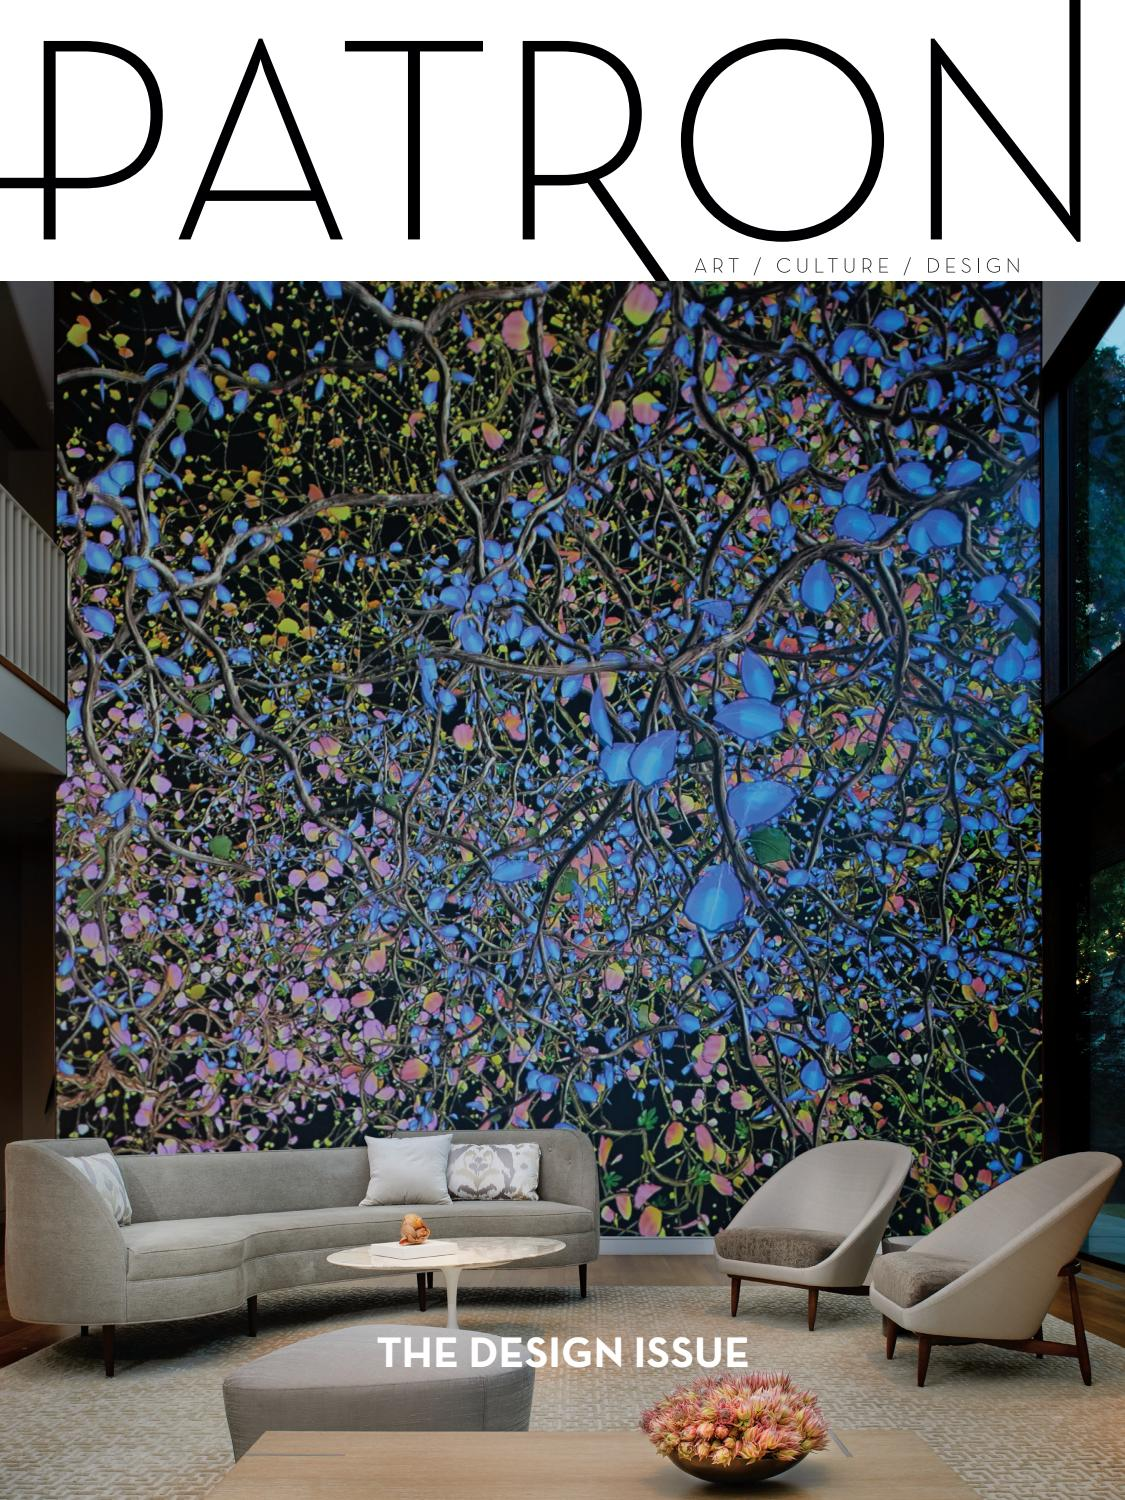 Patron S 2019 Design Issue Aug Sep By Patron Magazine Issuu